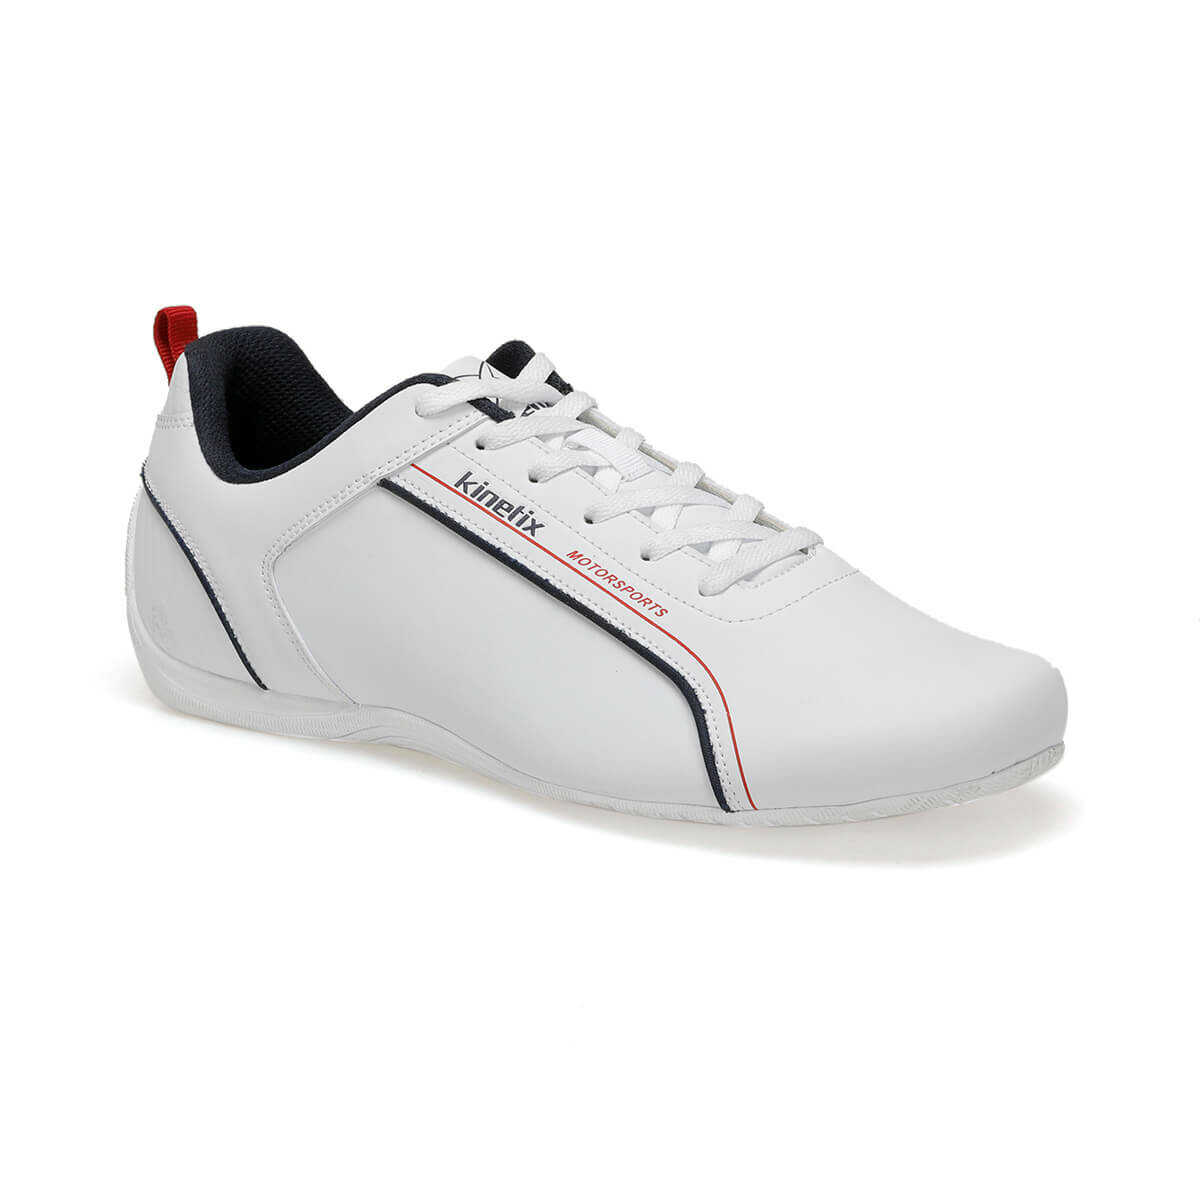 FLO RED M 9PR White Men 'S Sneaker Shoes KINETIX